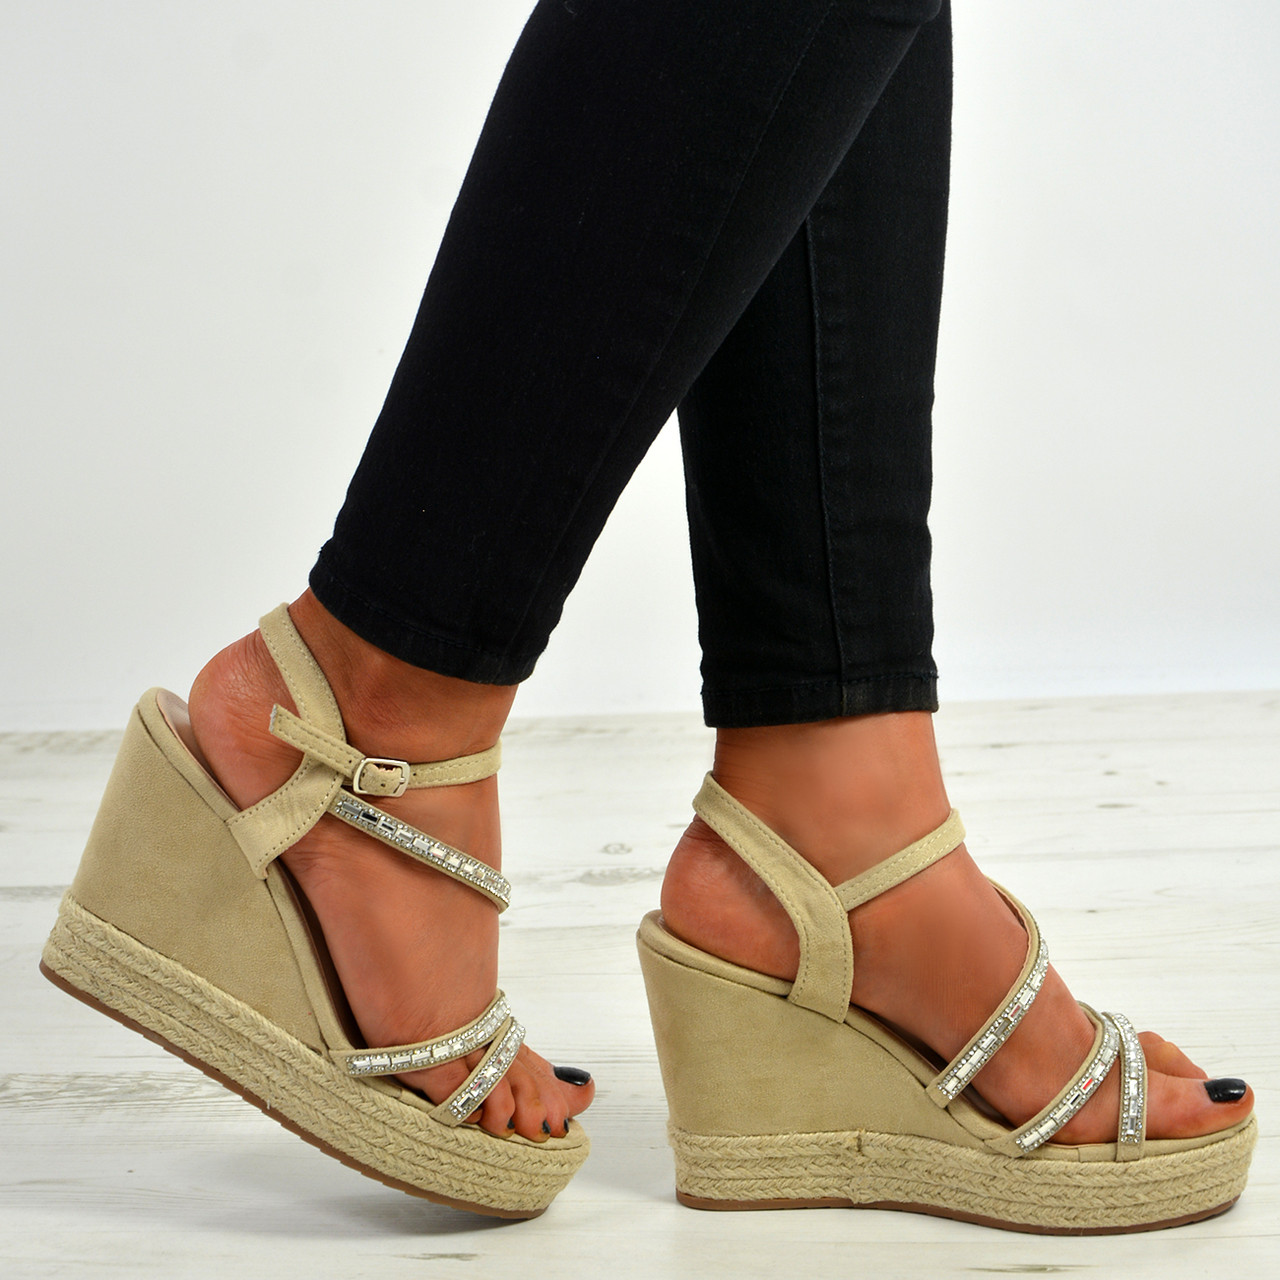 898769639980 New Womens Ladies Ankle Strap Studded Espadrille Wedge Platform Sandals  Shoes